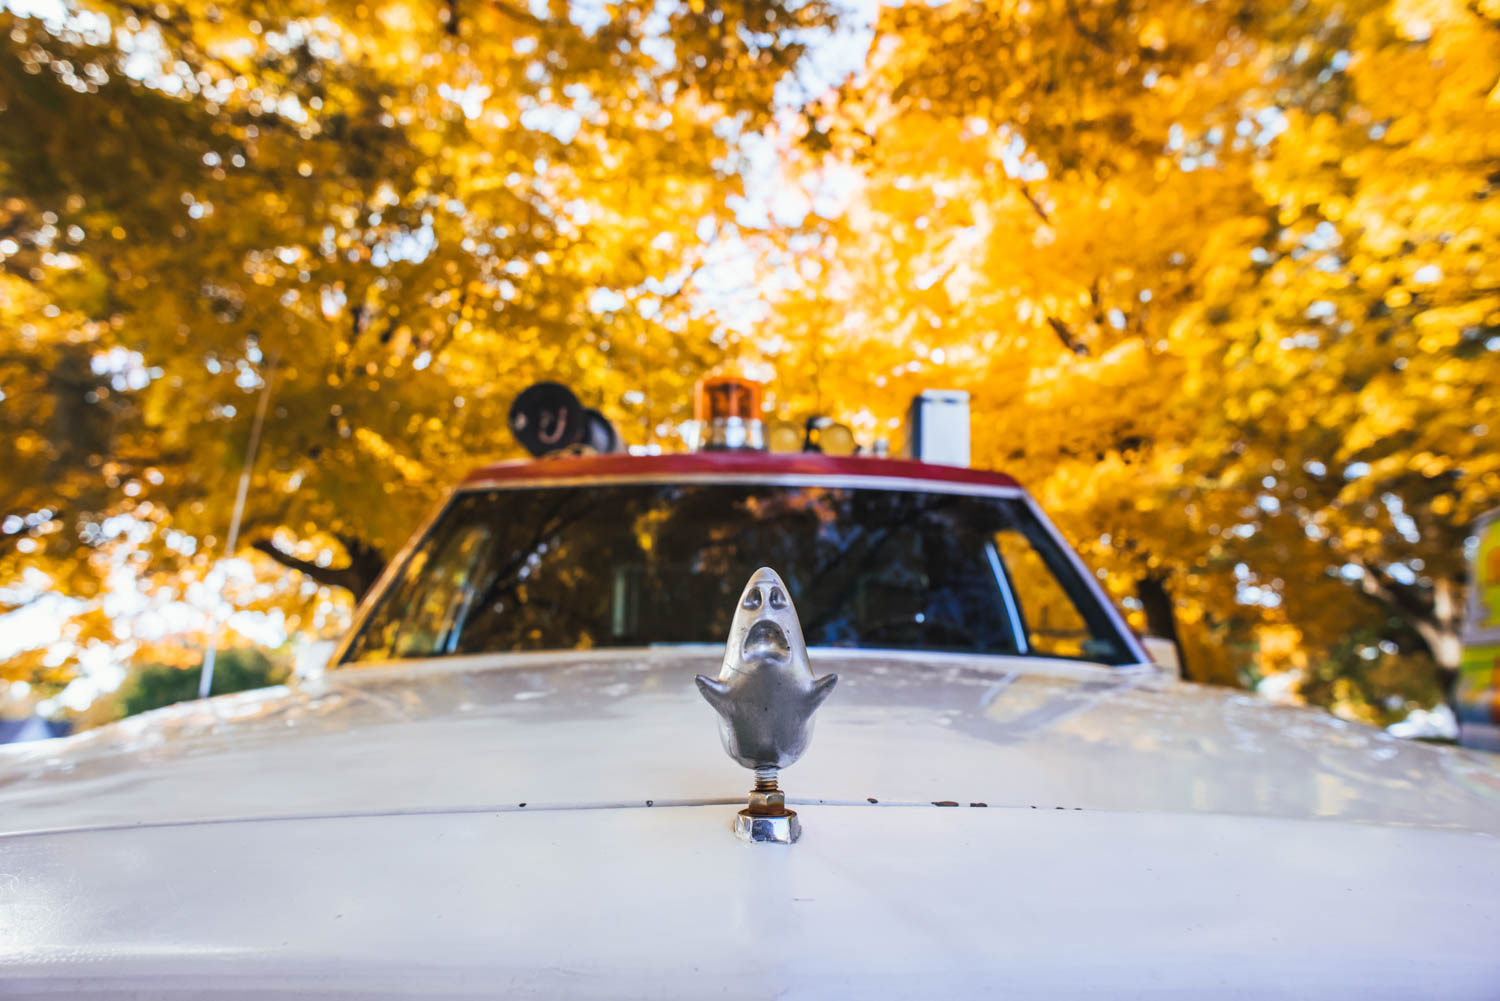 hood ornament of the ECTO-1